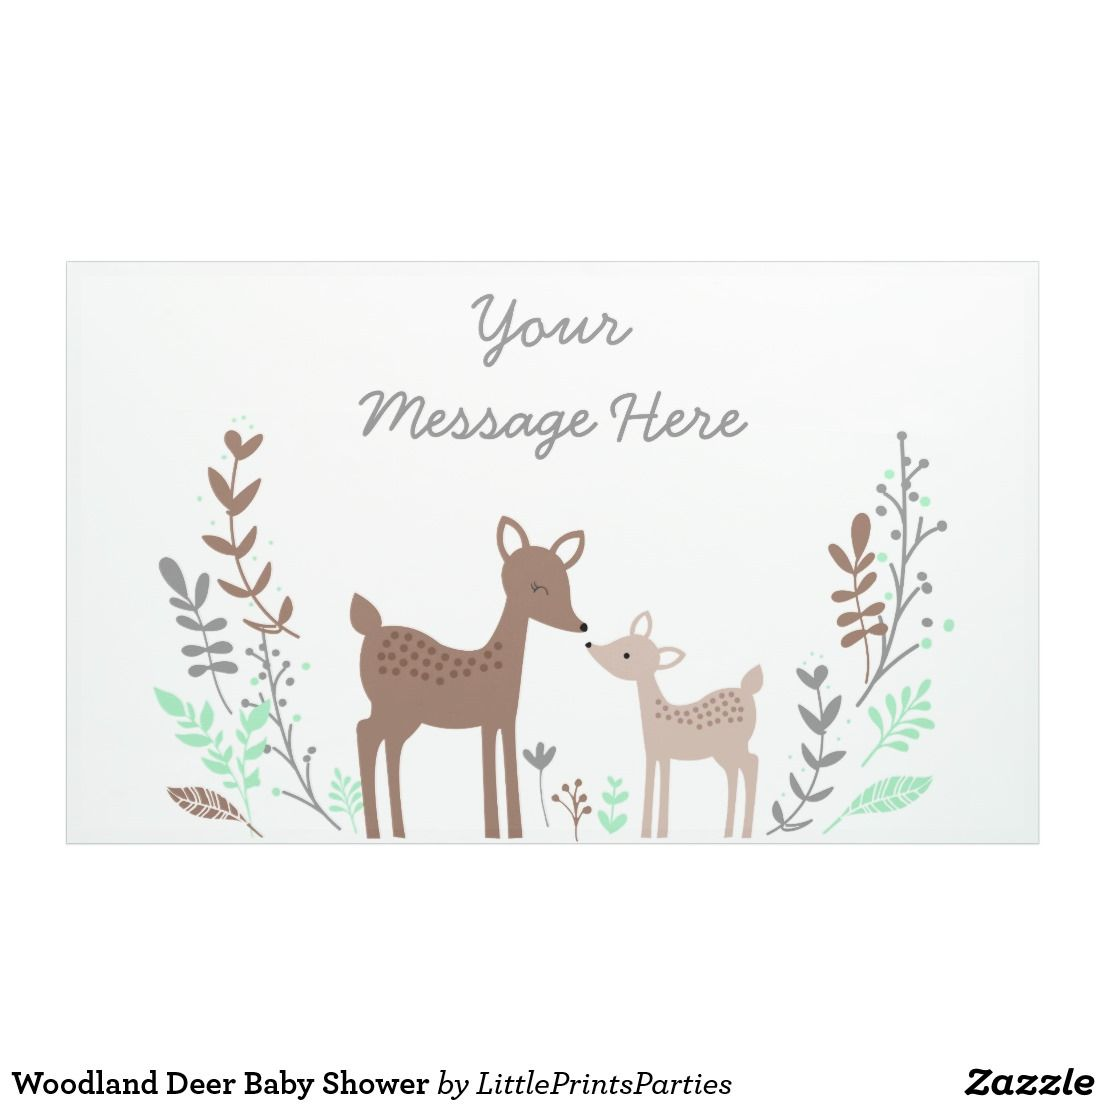 Woodland Deer Baby Shower Banner This Sweet Banner Features Our Cute